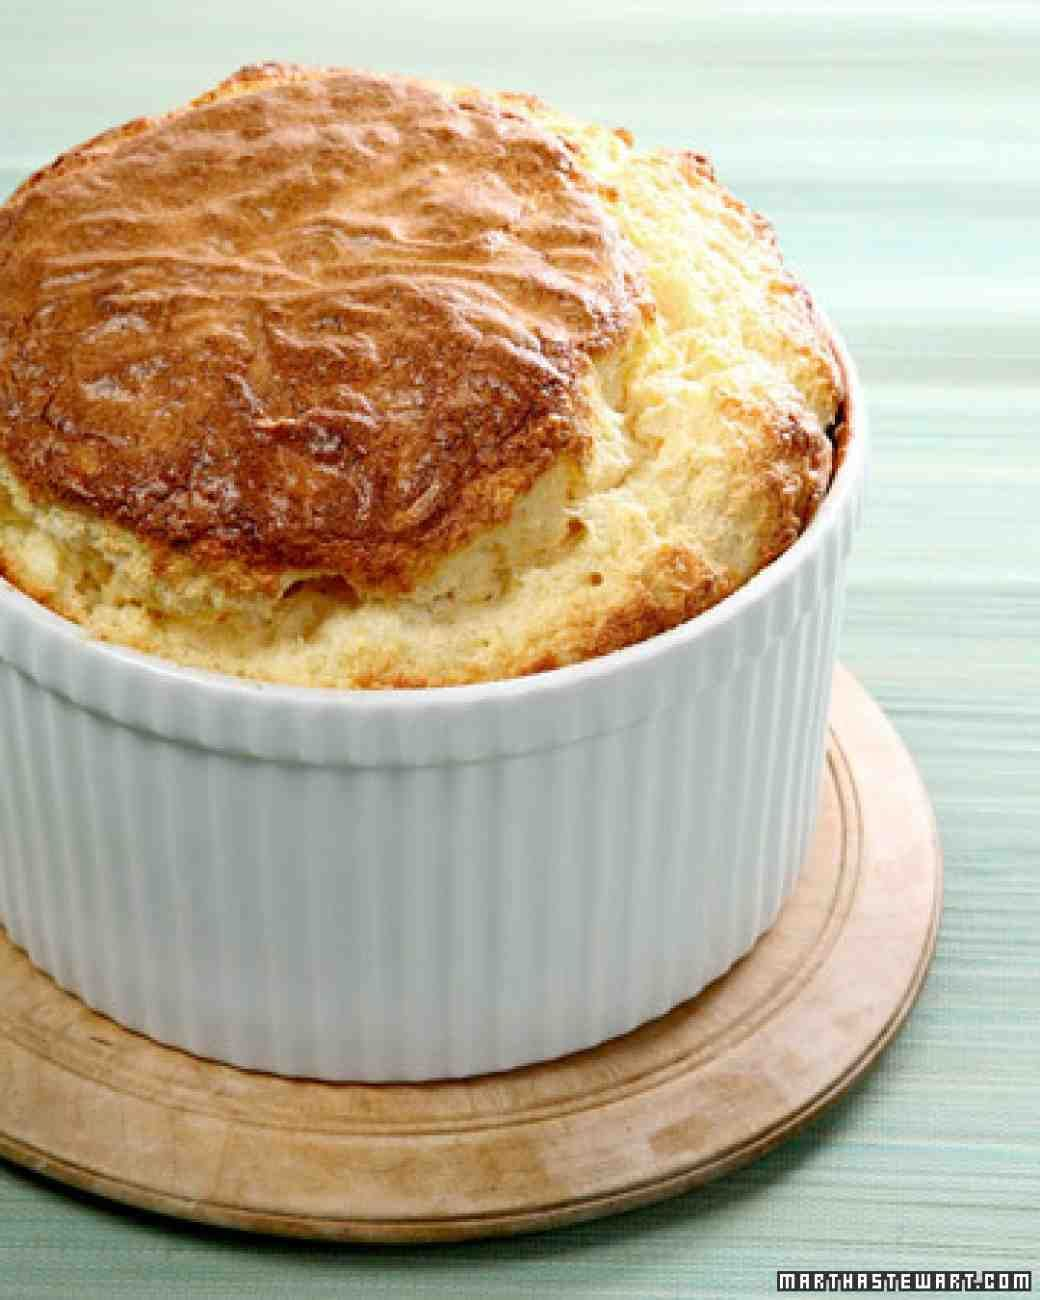 Parmesan Cheese Souffle Souffle Recipes Cheese Souffle Cheese Souffle Recipes